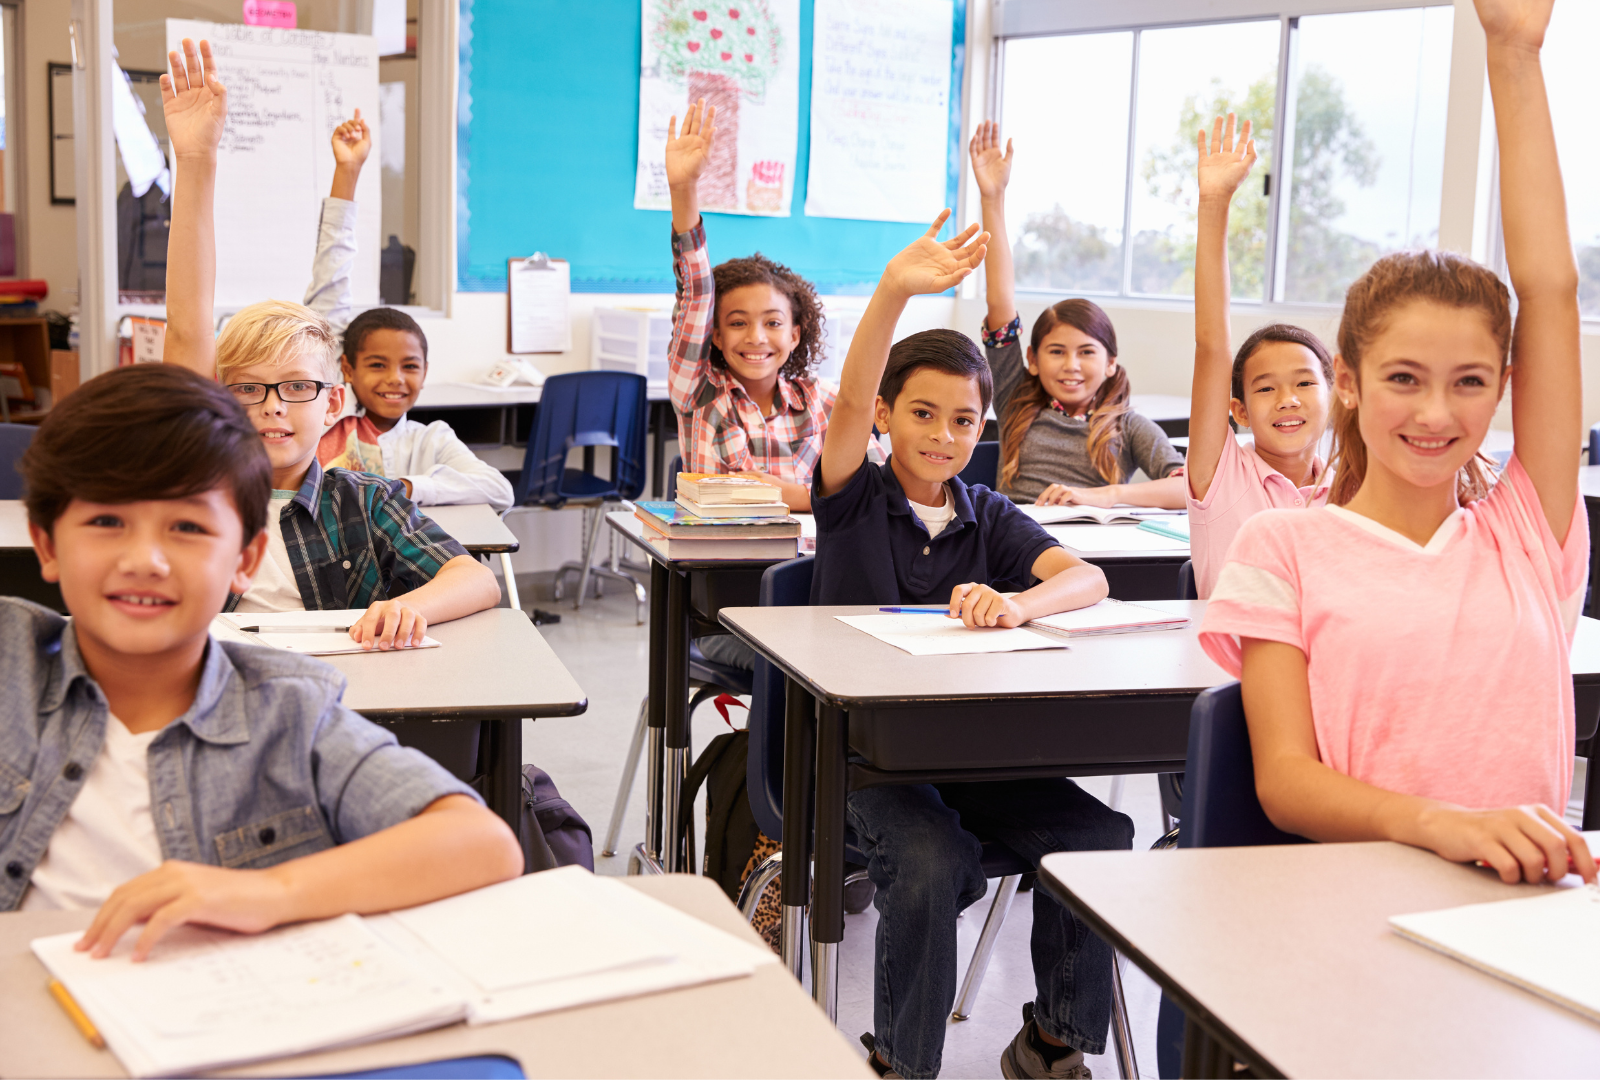 middle school students raise their hands at their desks in the classroom, smiling